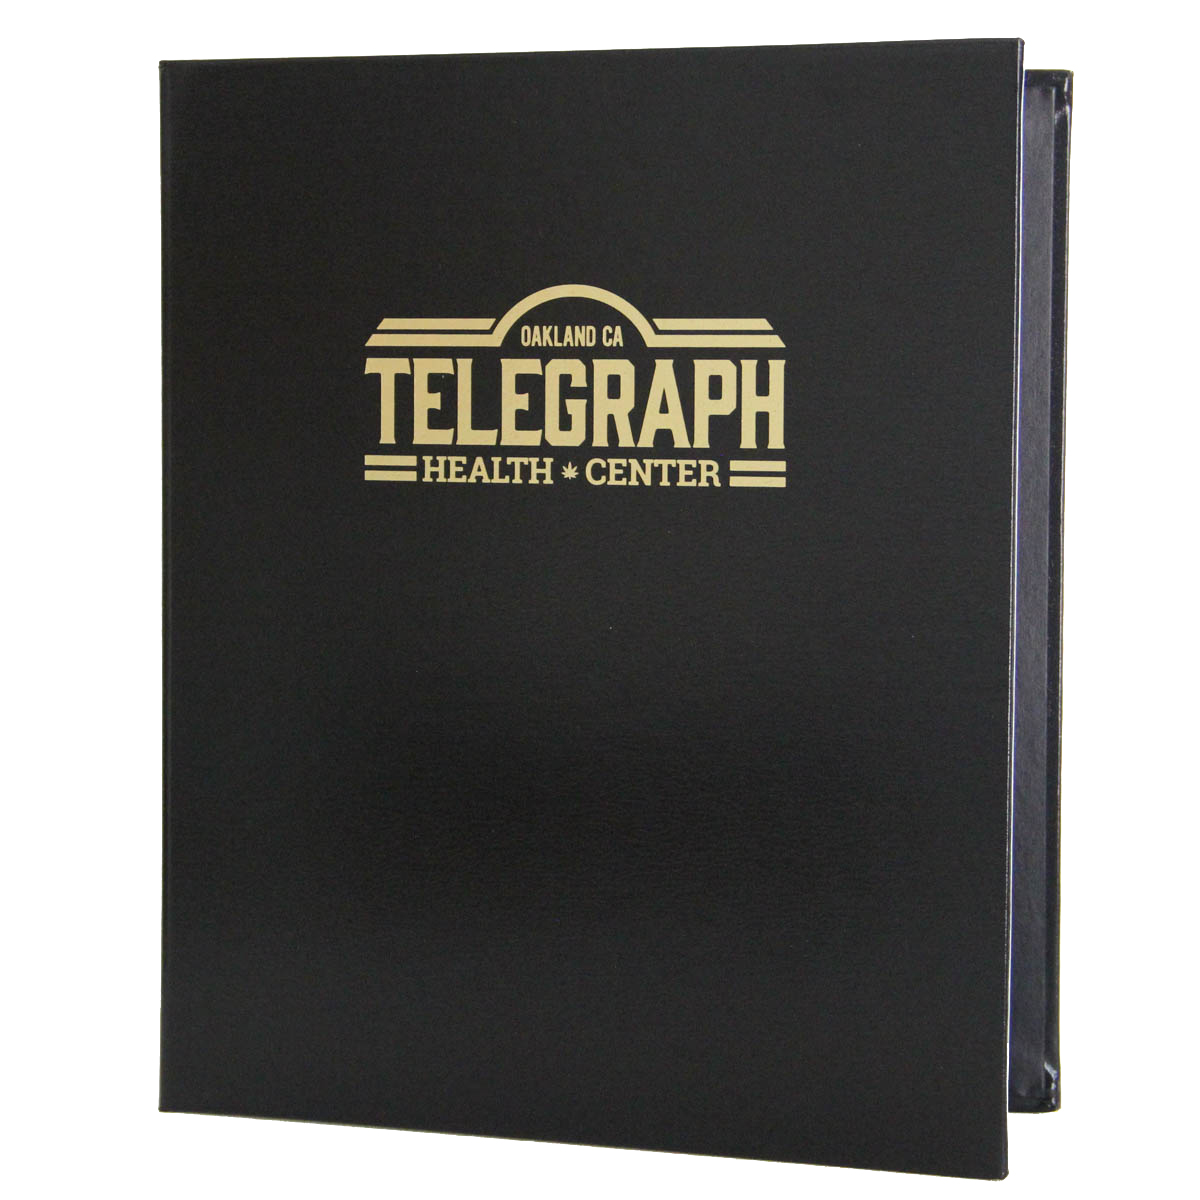 Bonded Leather Three Ring Binder 8.5x11 with gold foil stamp.